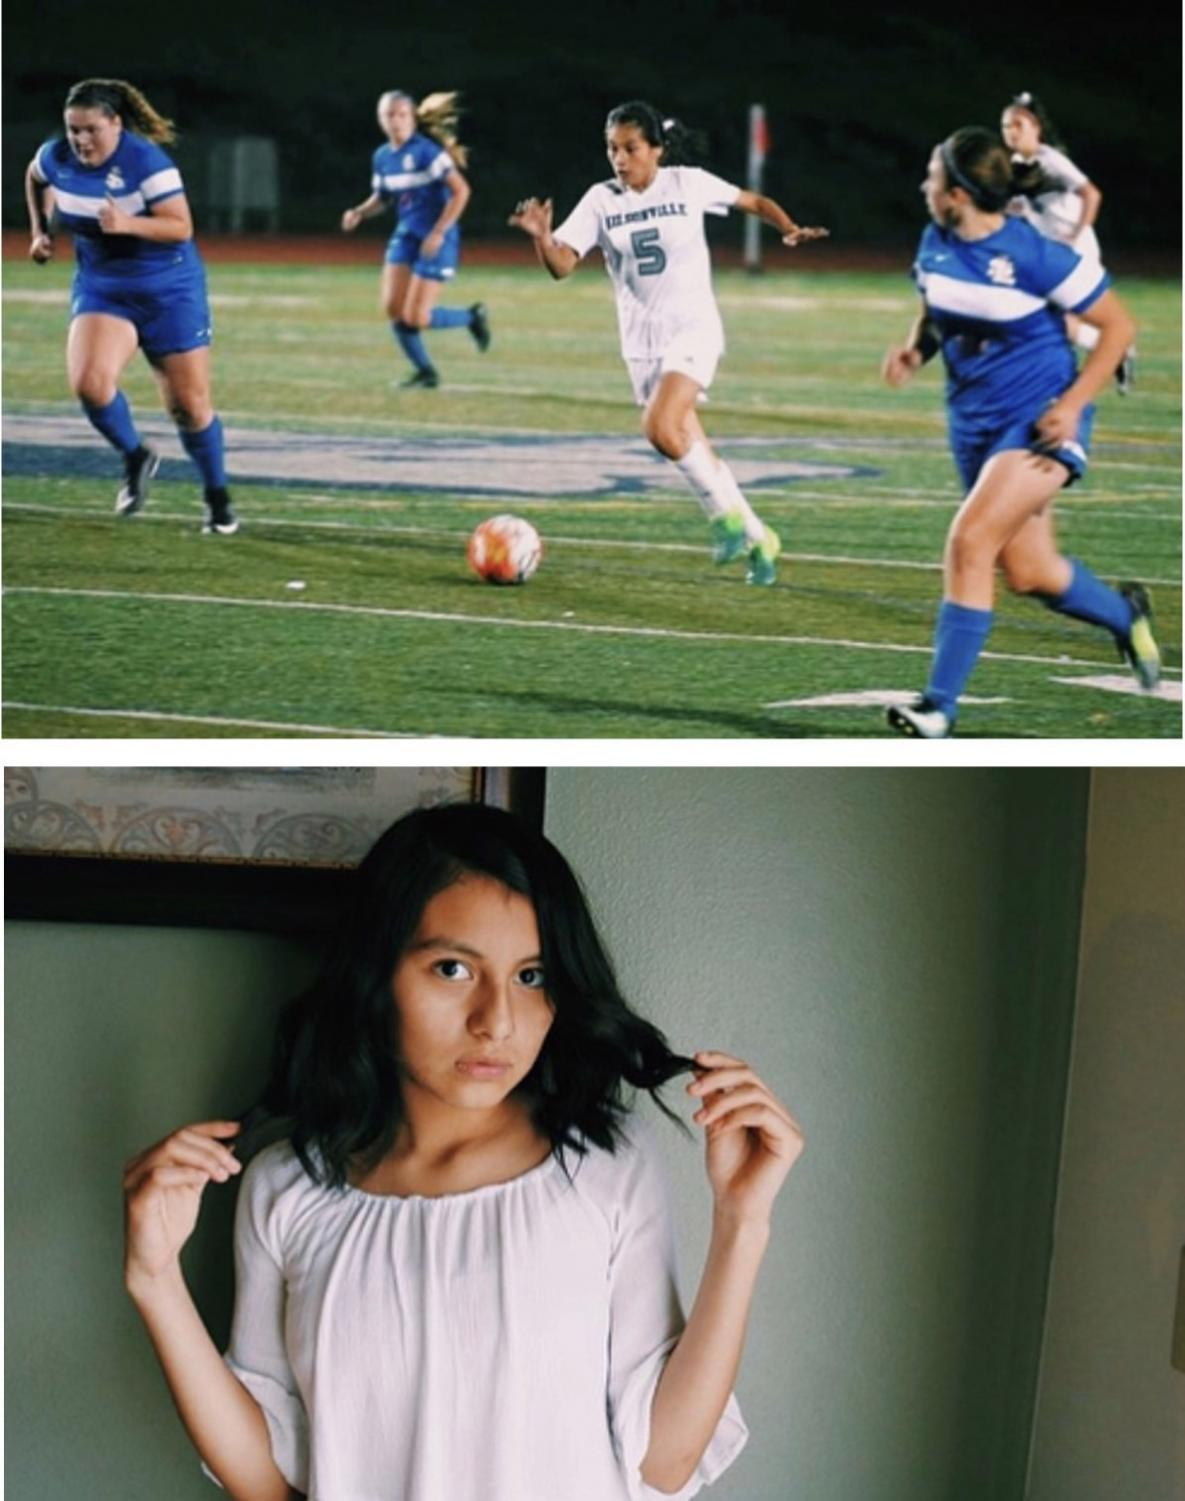 Araxi Tejeda-Martinez, student at Wilsonville High School. She will be balancing soccer and AP classes this year.